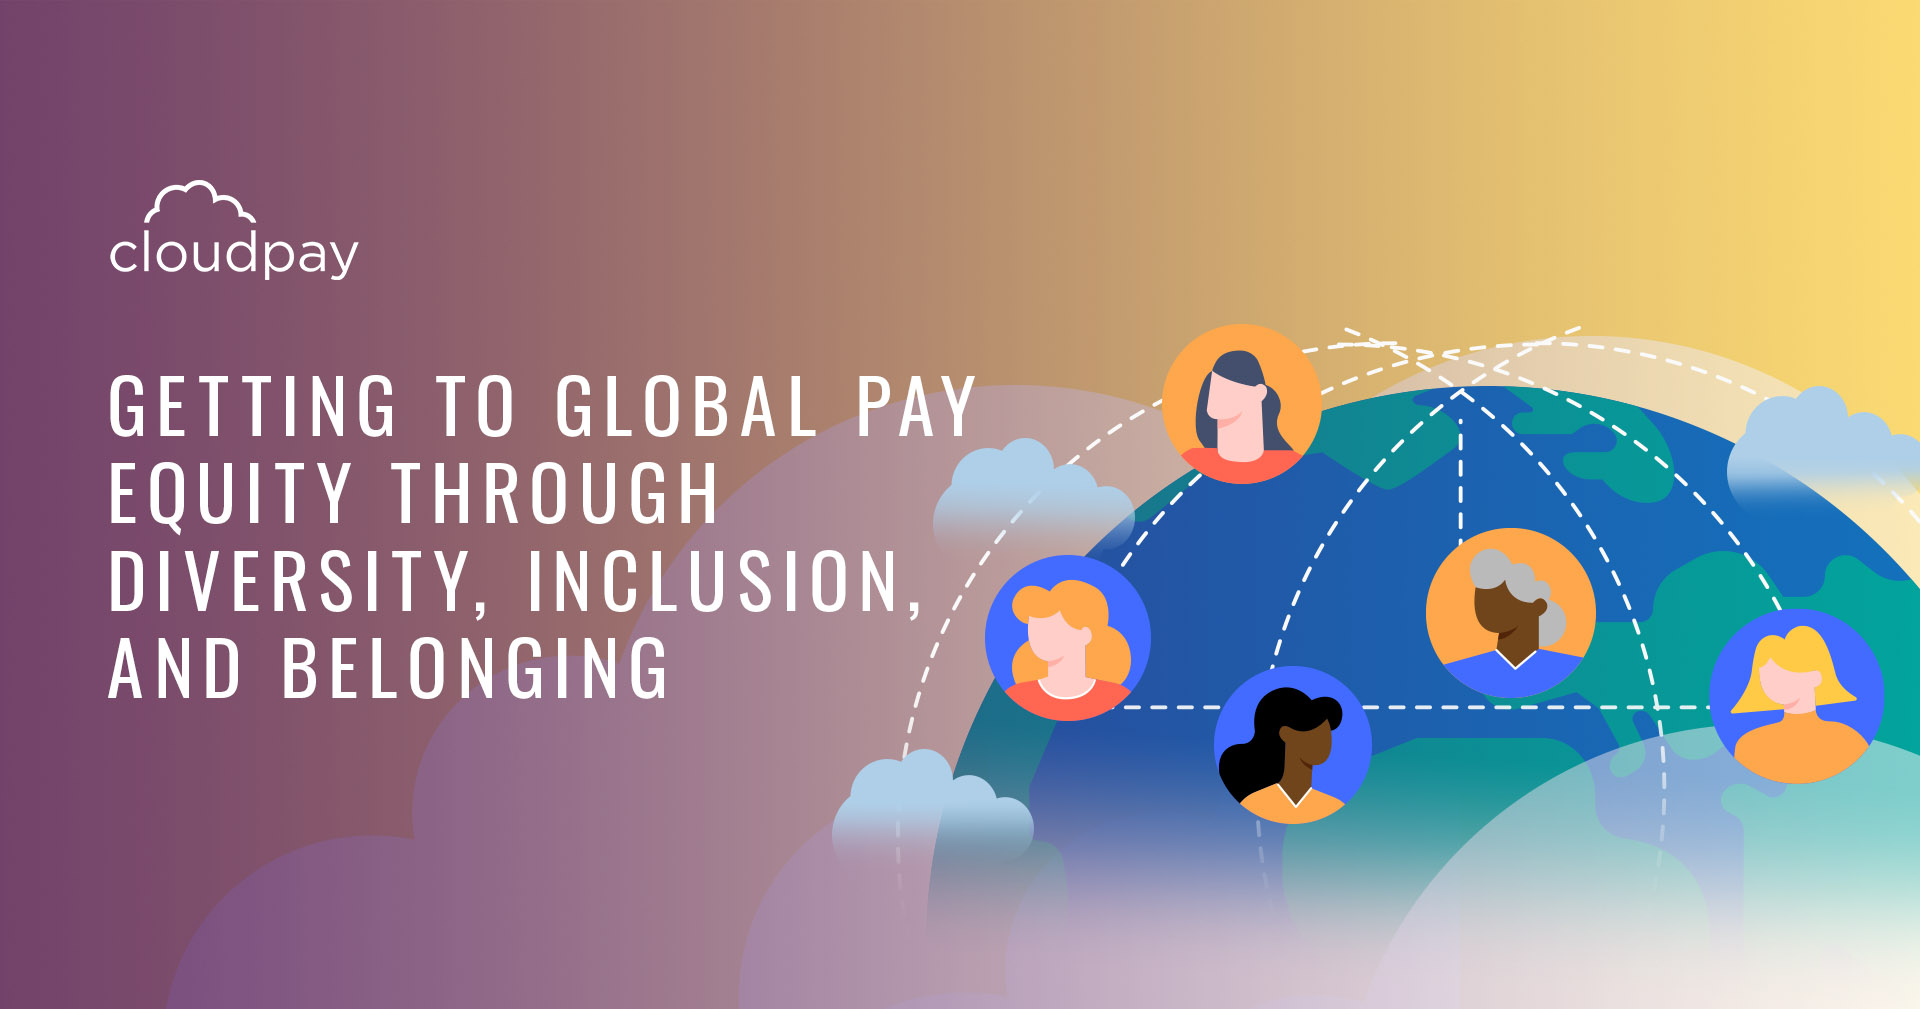 Getting to Global Pay Equity through Diversity, Inclusion, and Belonging